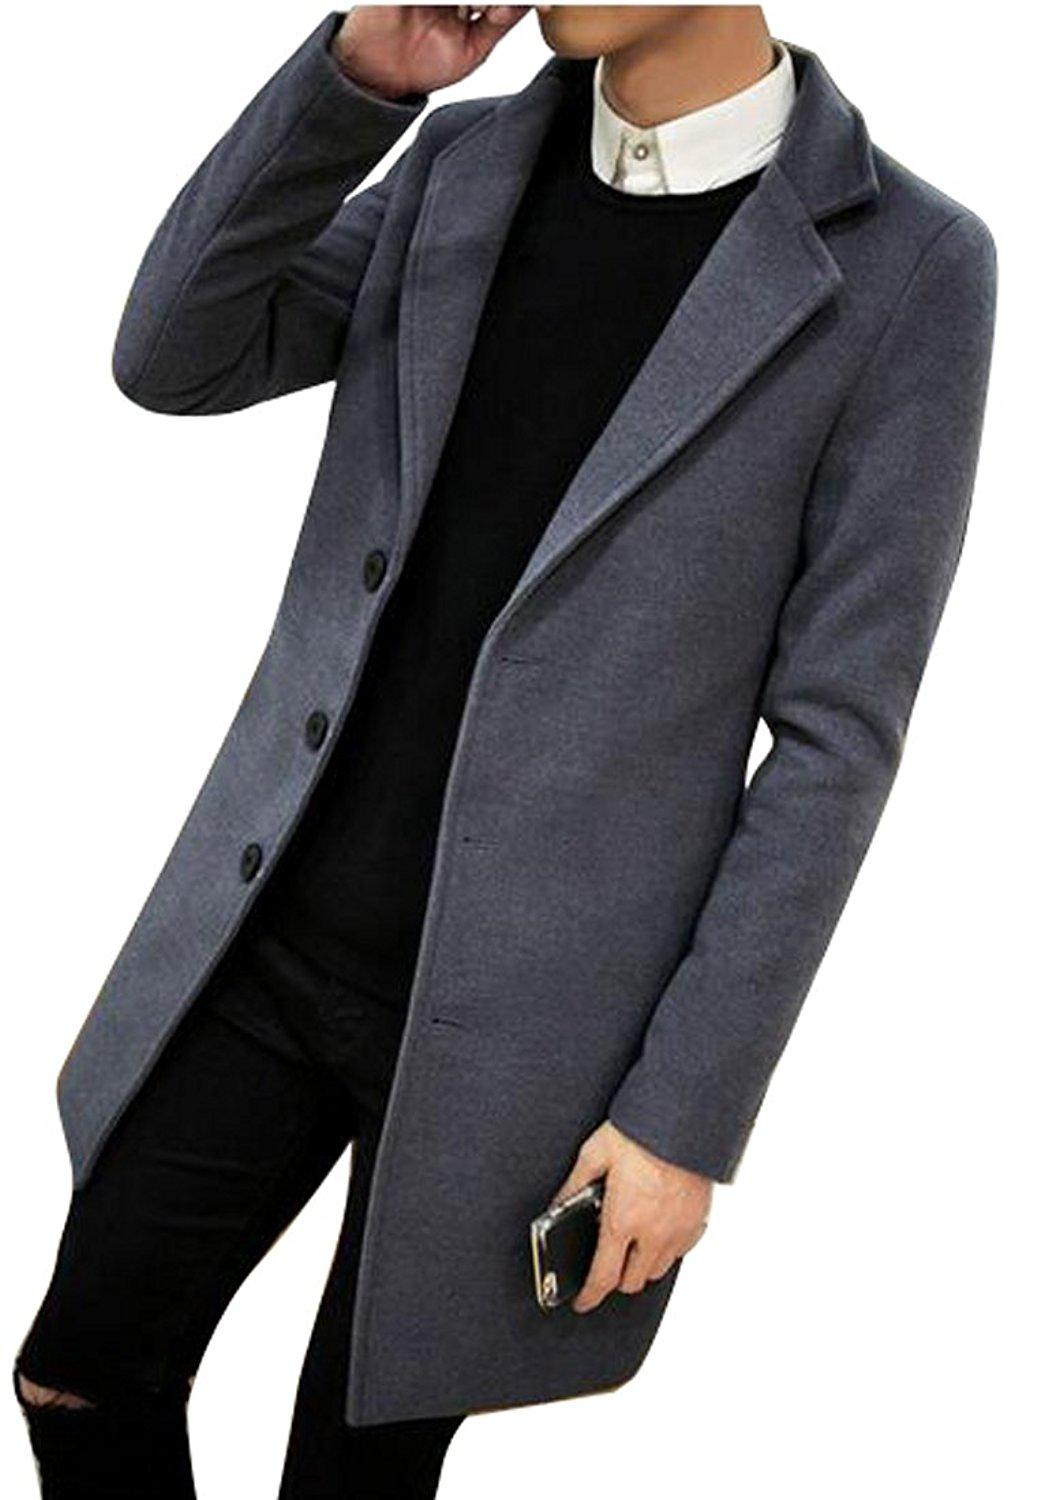 2019 Mens Casual Single Breasted Slim Fit Wool Blended Pea Coat Long